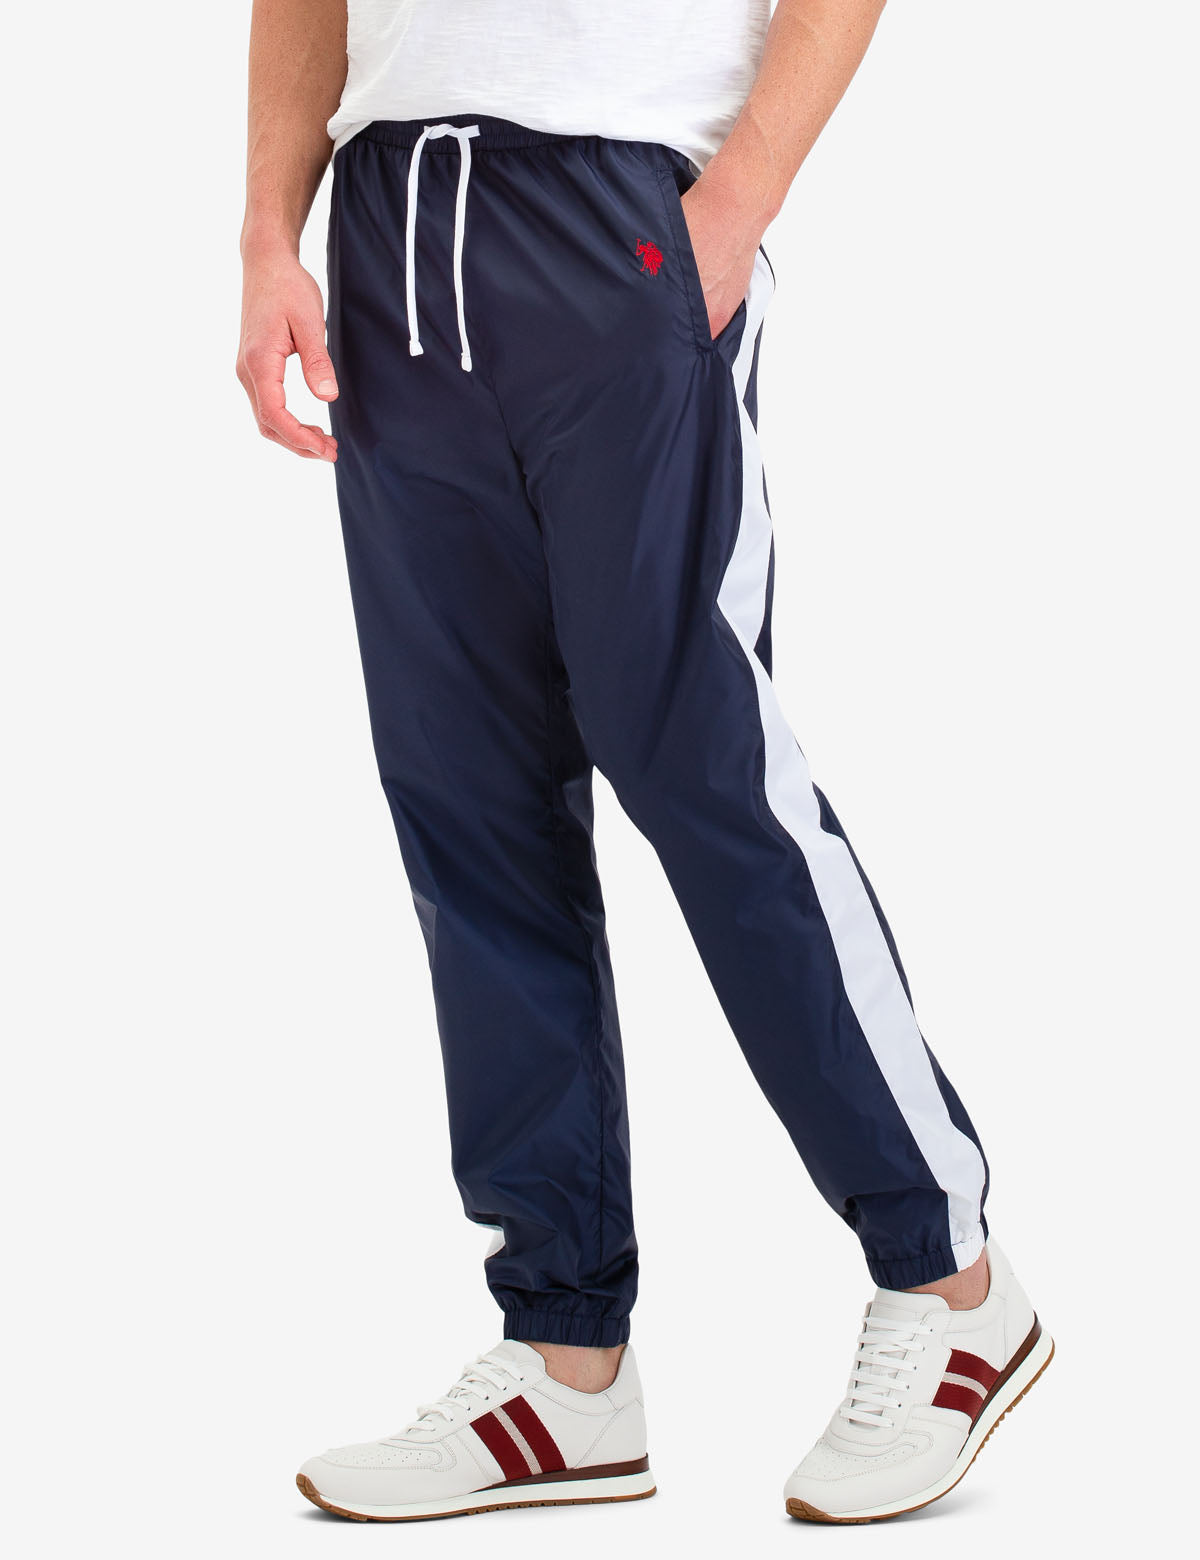 COLORBLOCK JOGGER - U.S. Polo Assn.